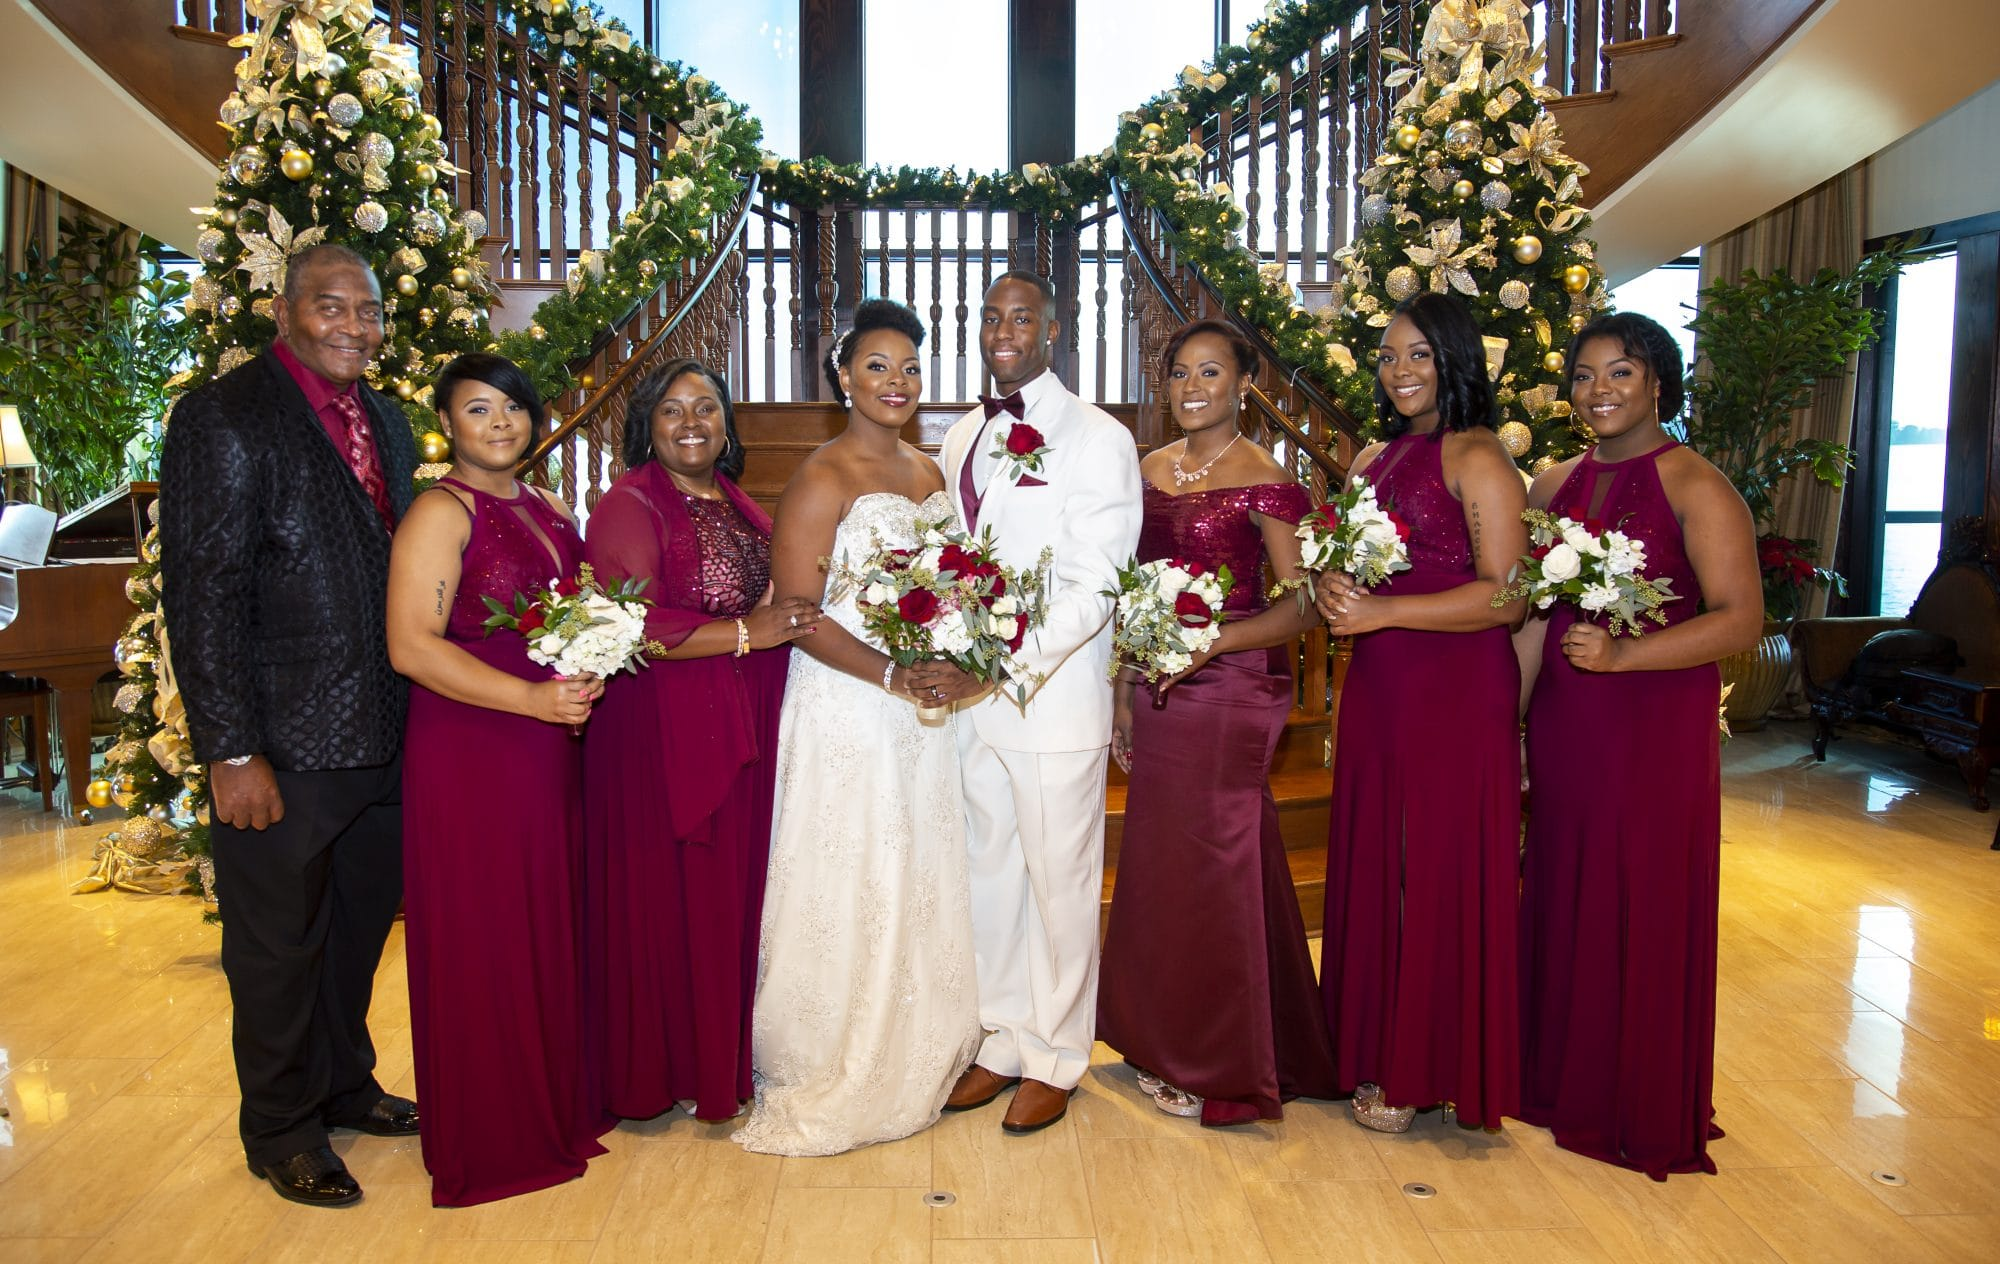 Bride and groom with wedding party in front of gorgeous staircase